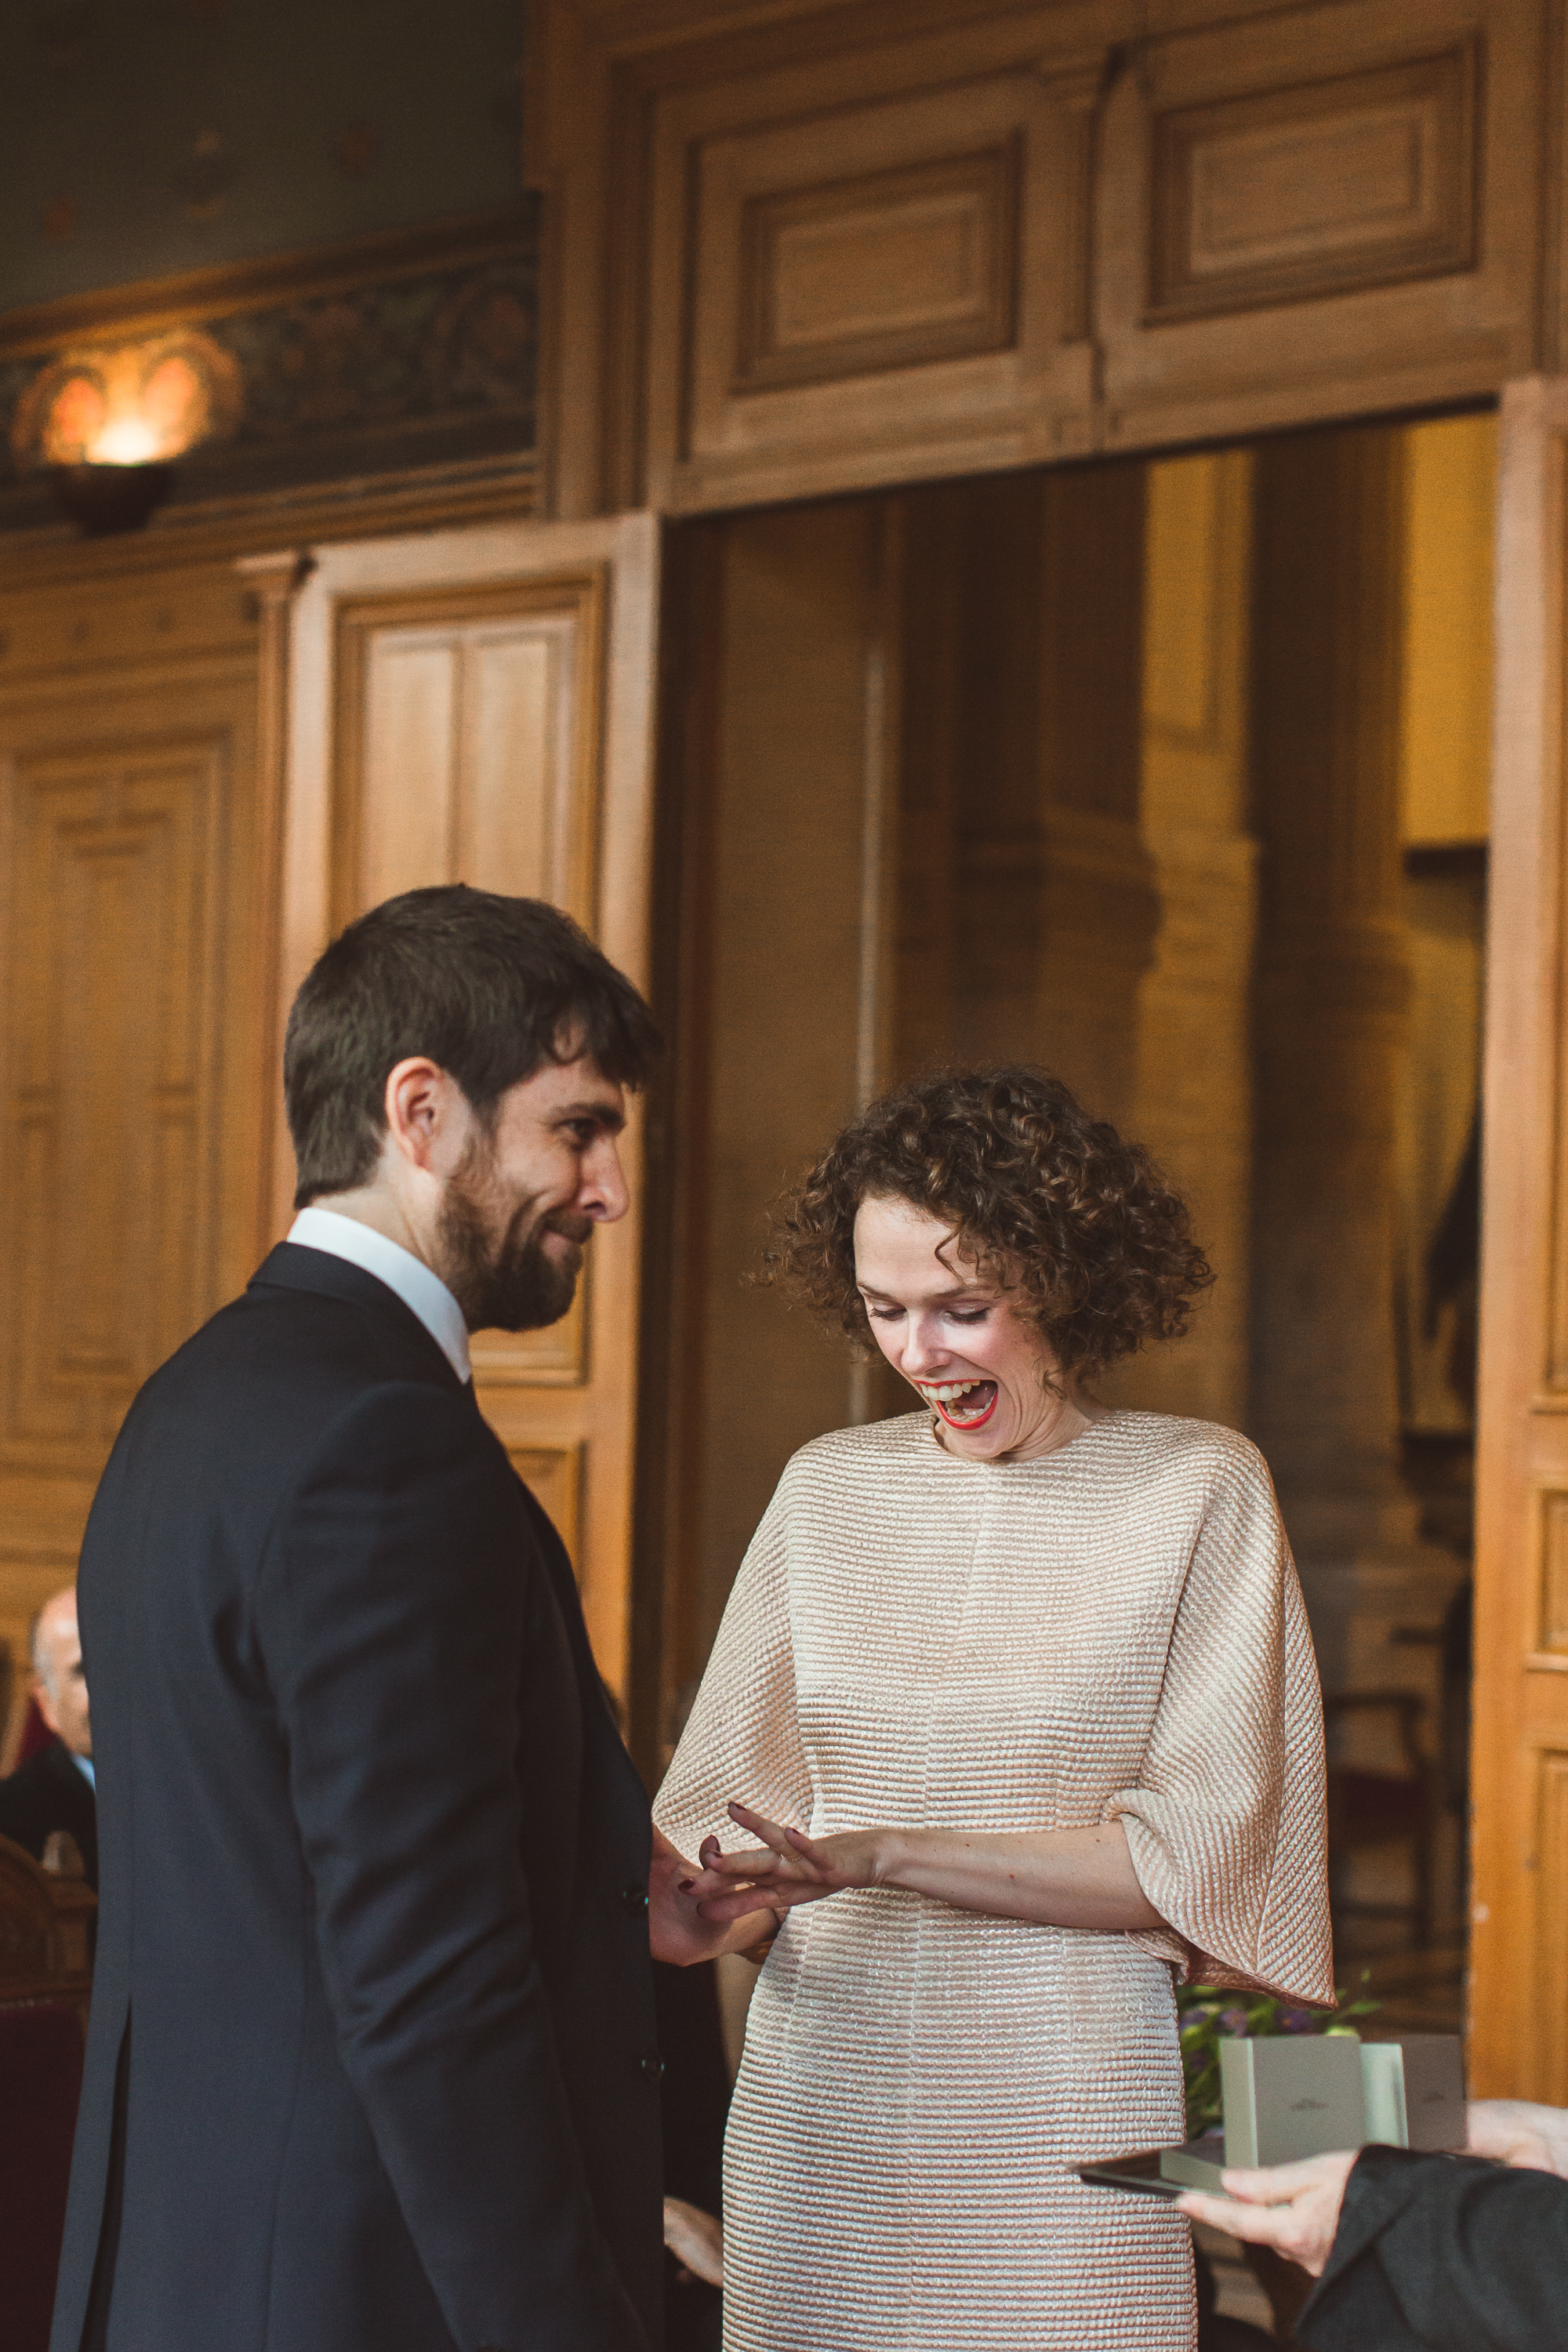 Emma&Nico_WeddingParis_by_UlaBlocksage-51.jpg